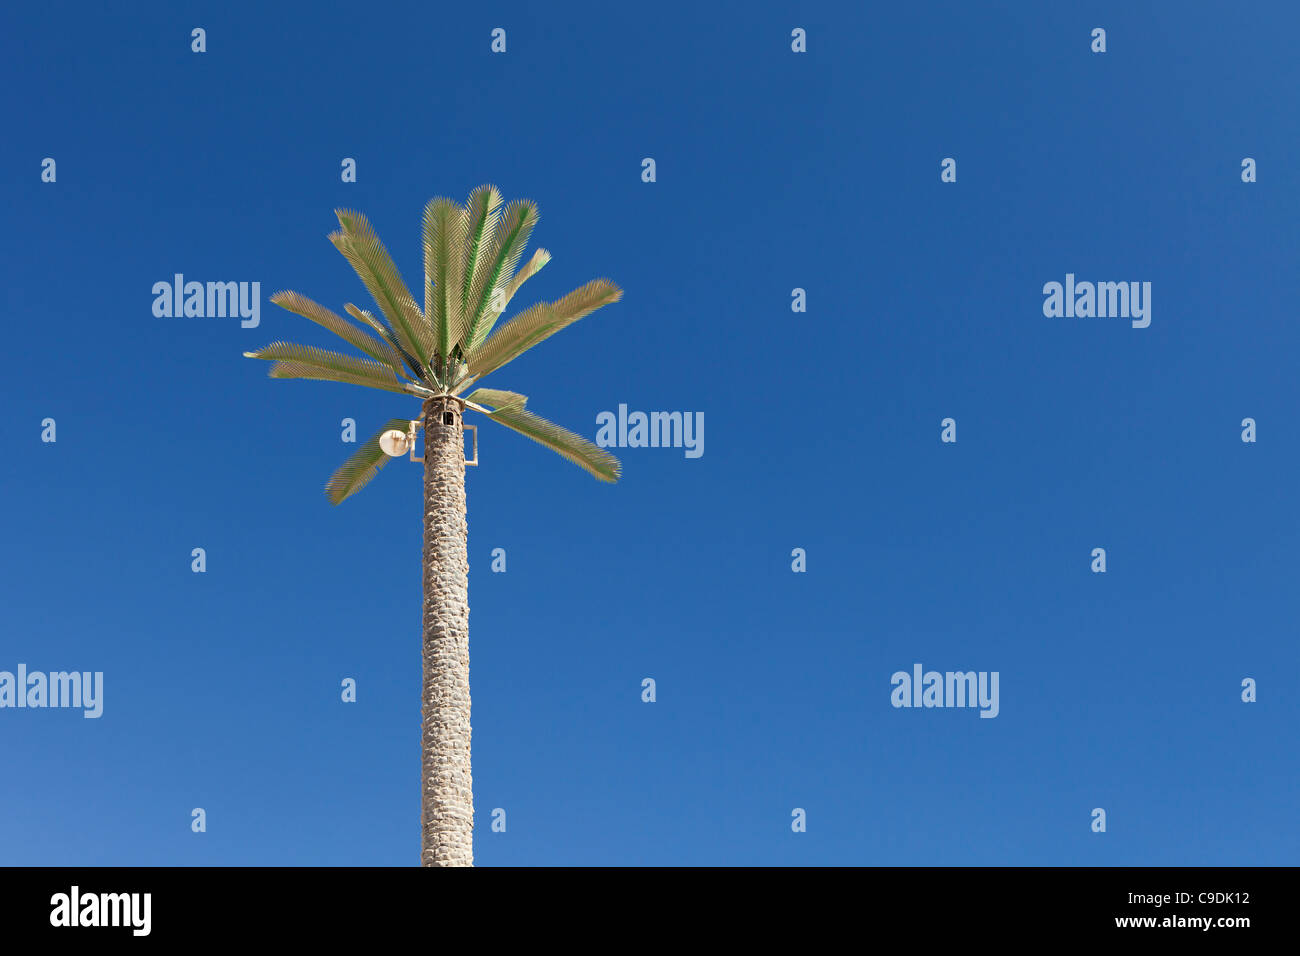 A mobile phone mast concealed as a palm tree in Egypt - Stock Image